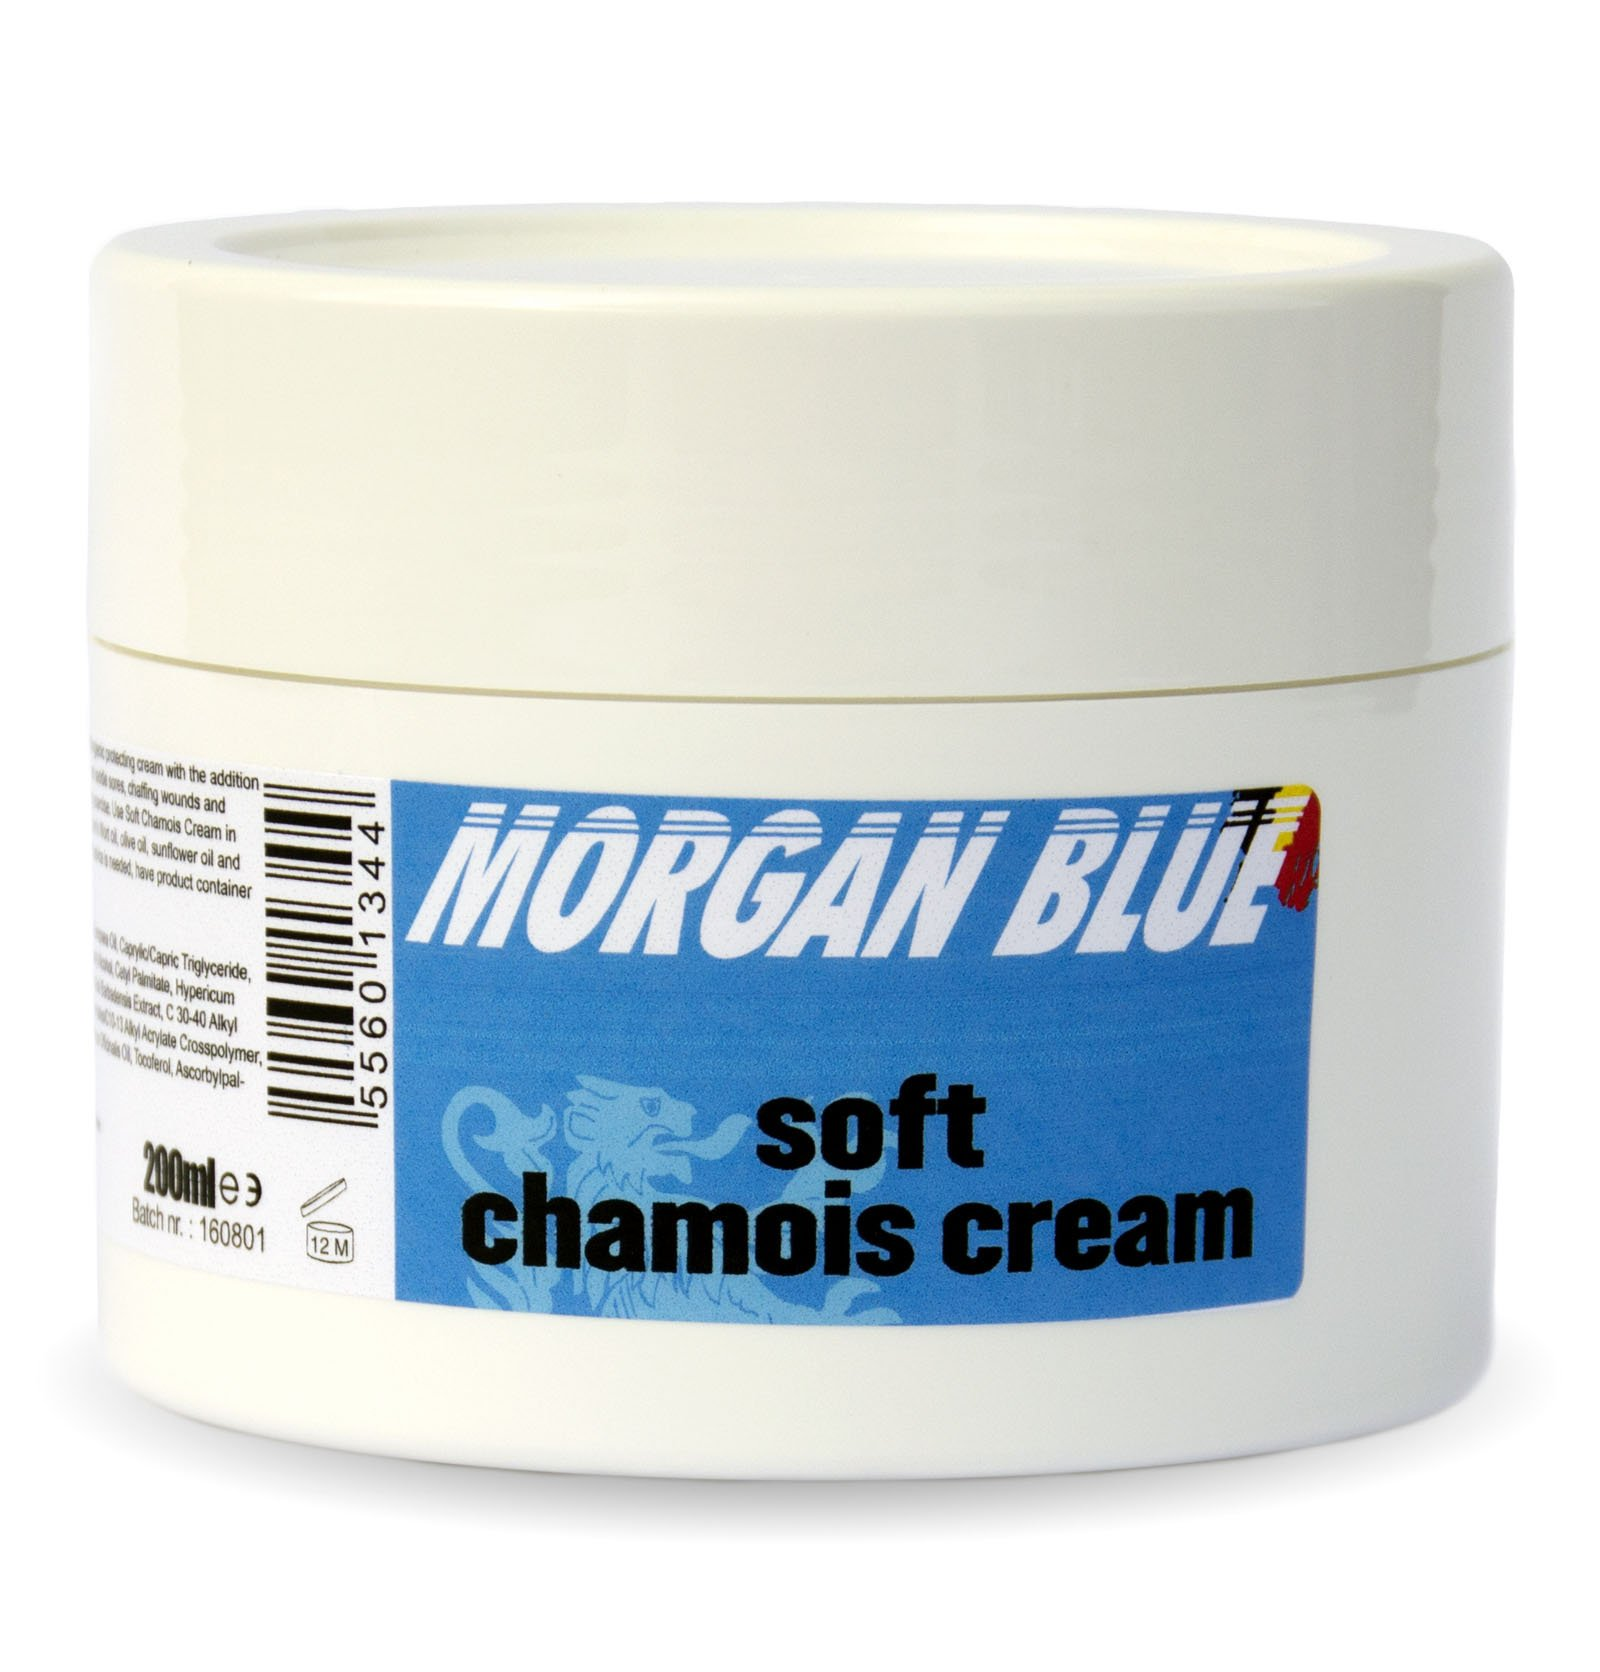 Morgan Blue soft chamois cream 200 ml | Personlig pleje